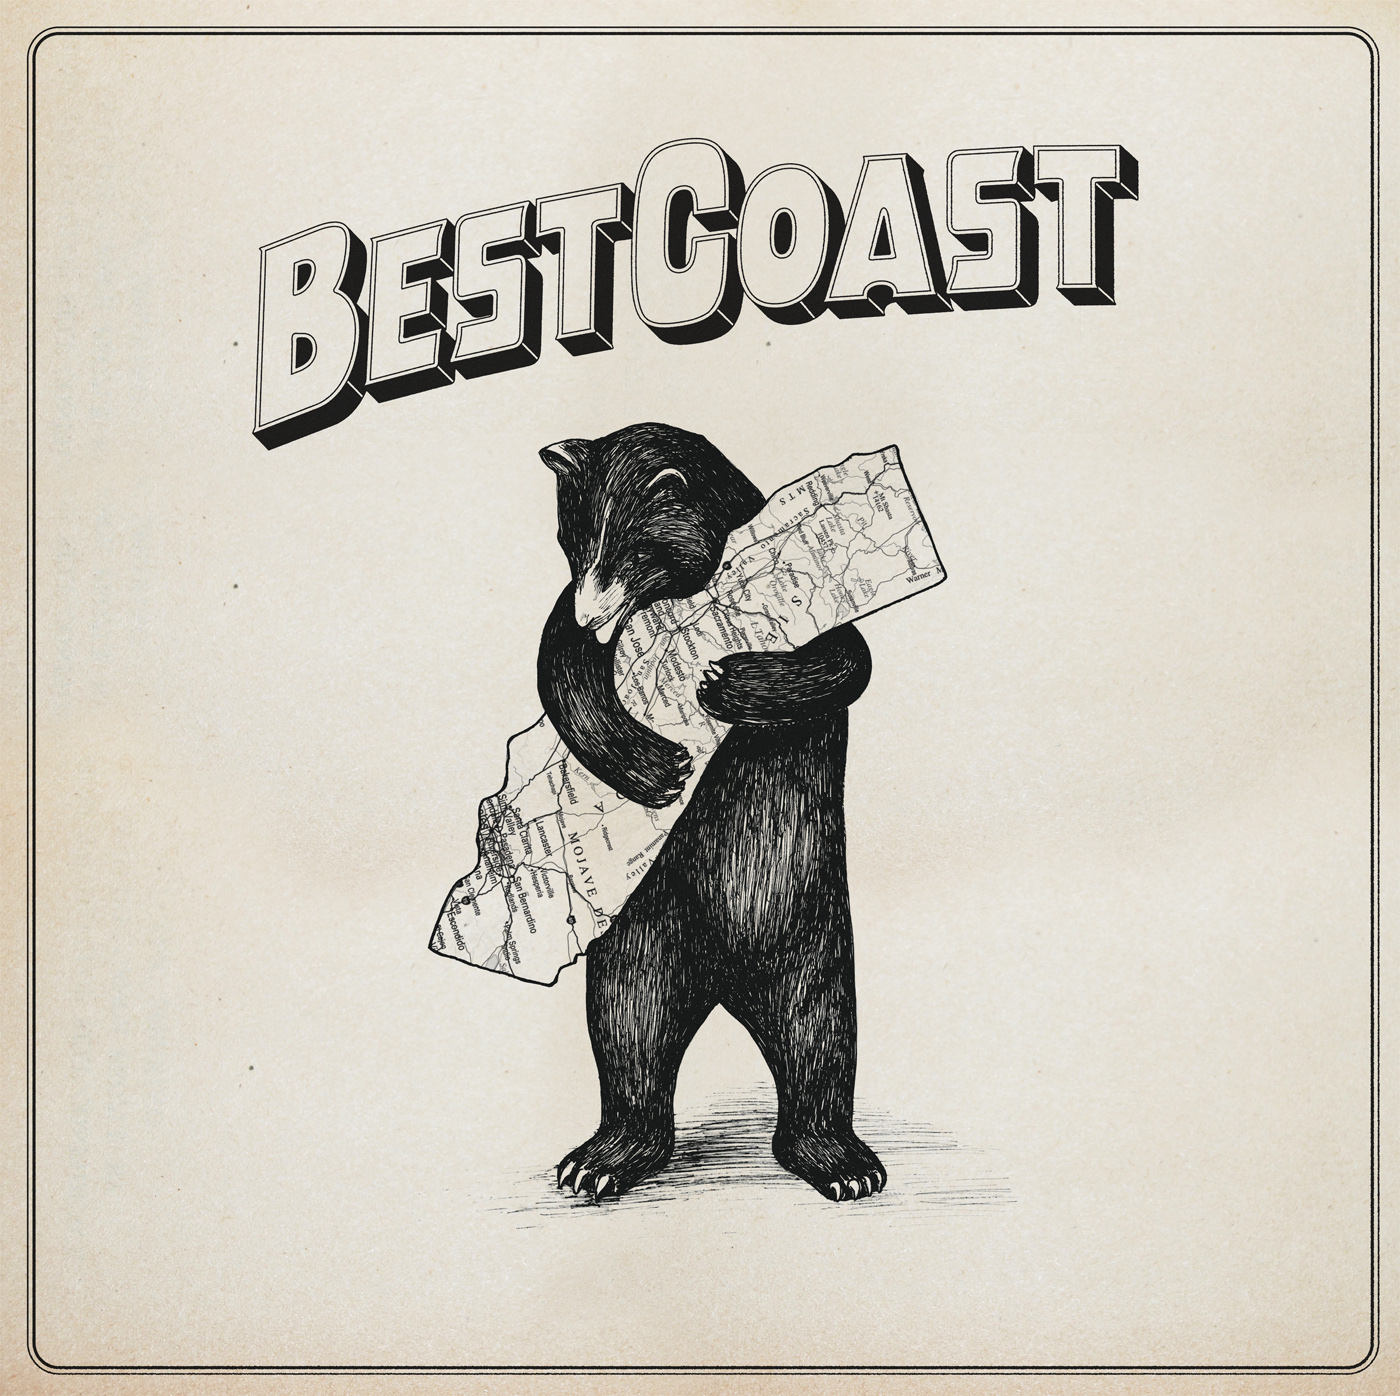 love is a four letter word album cover - indie blog shot best coast a review of the only place